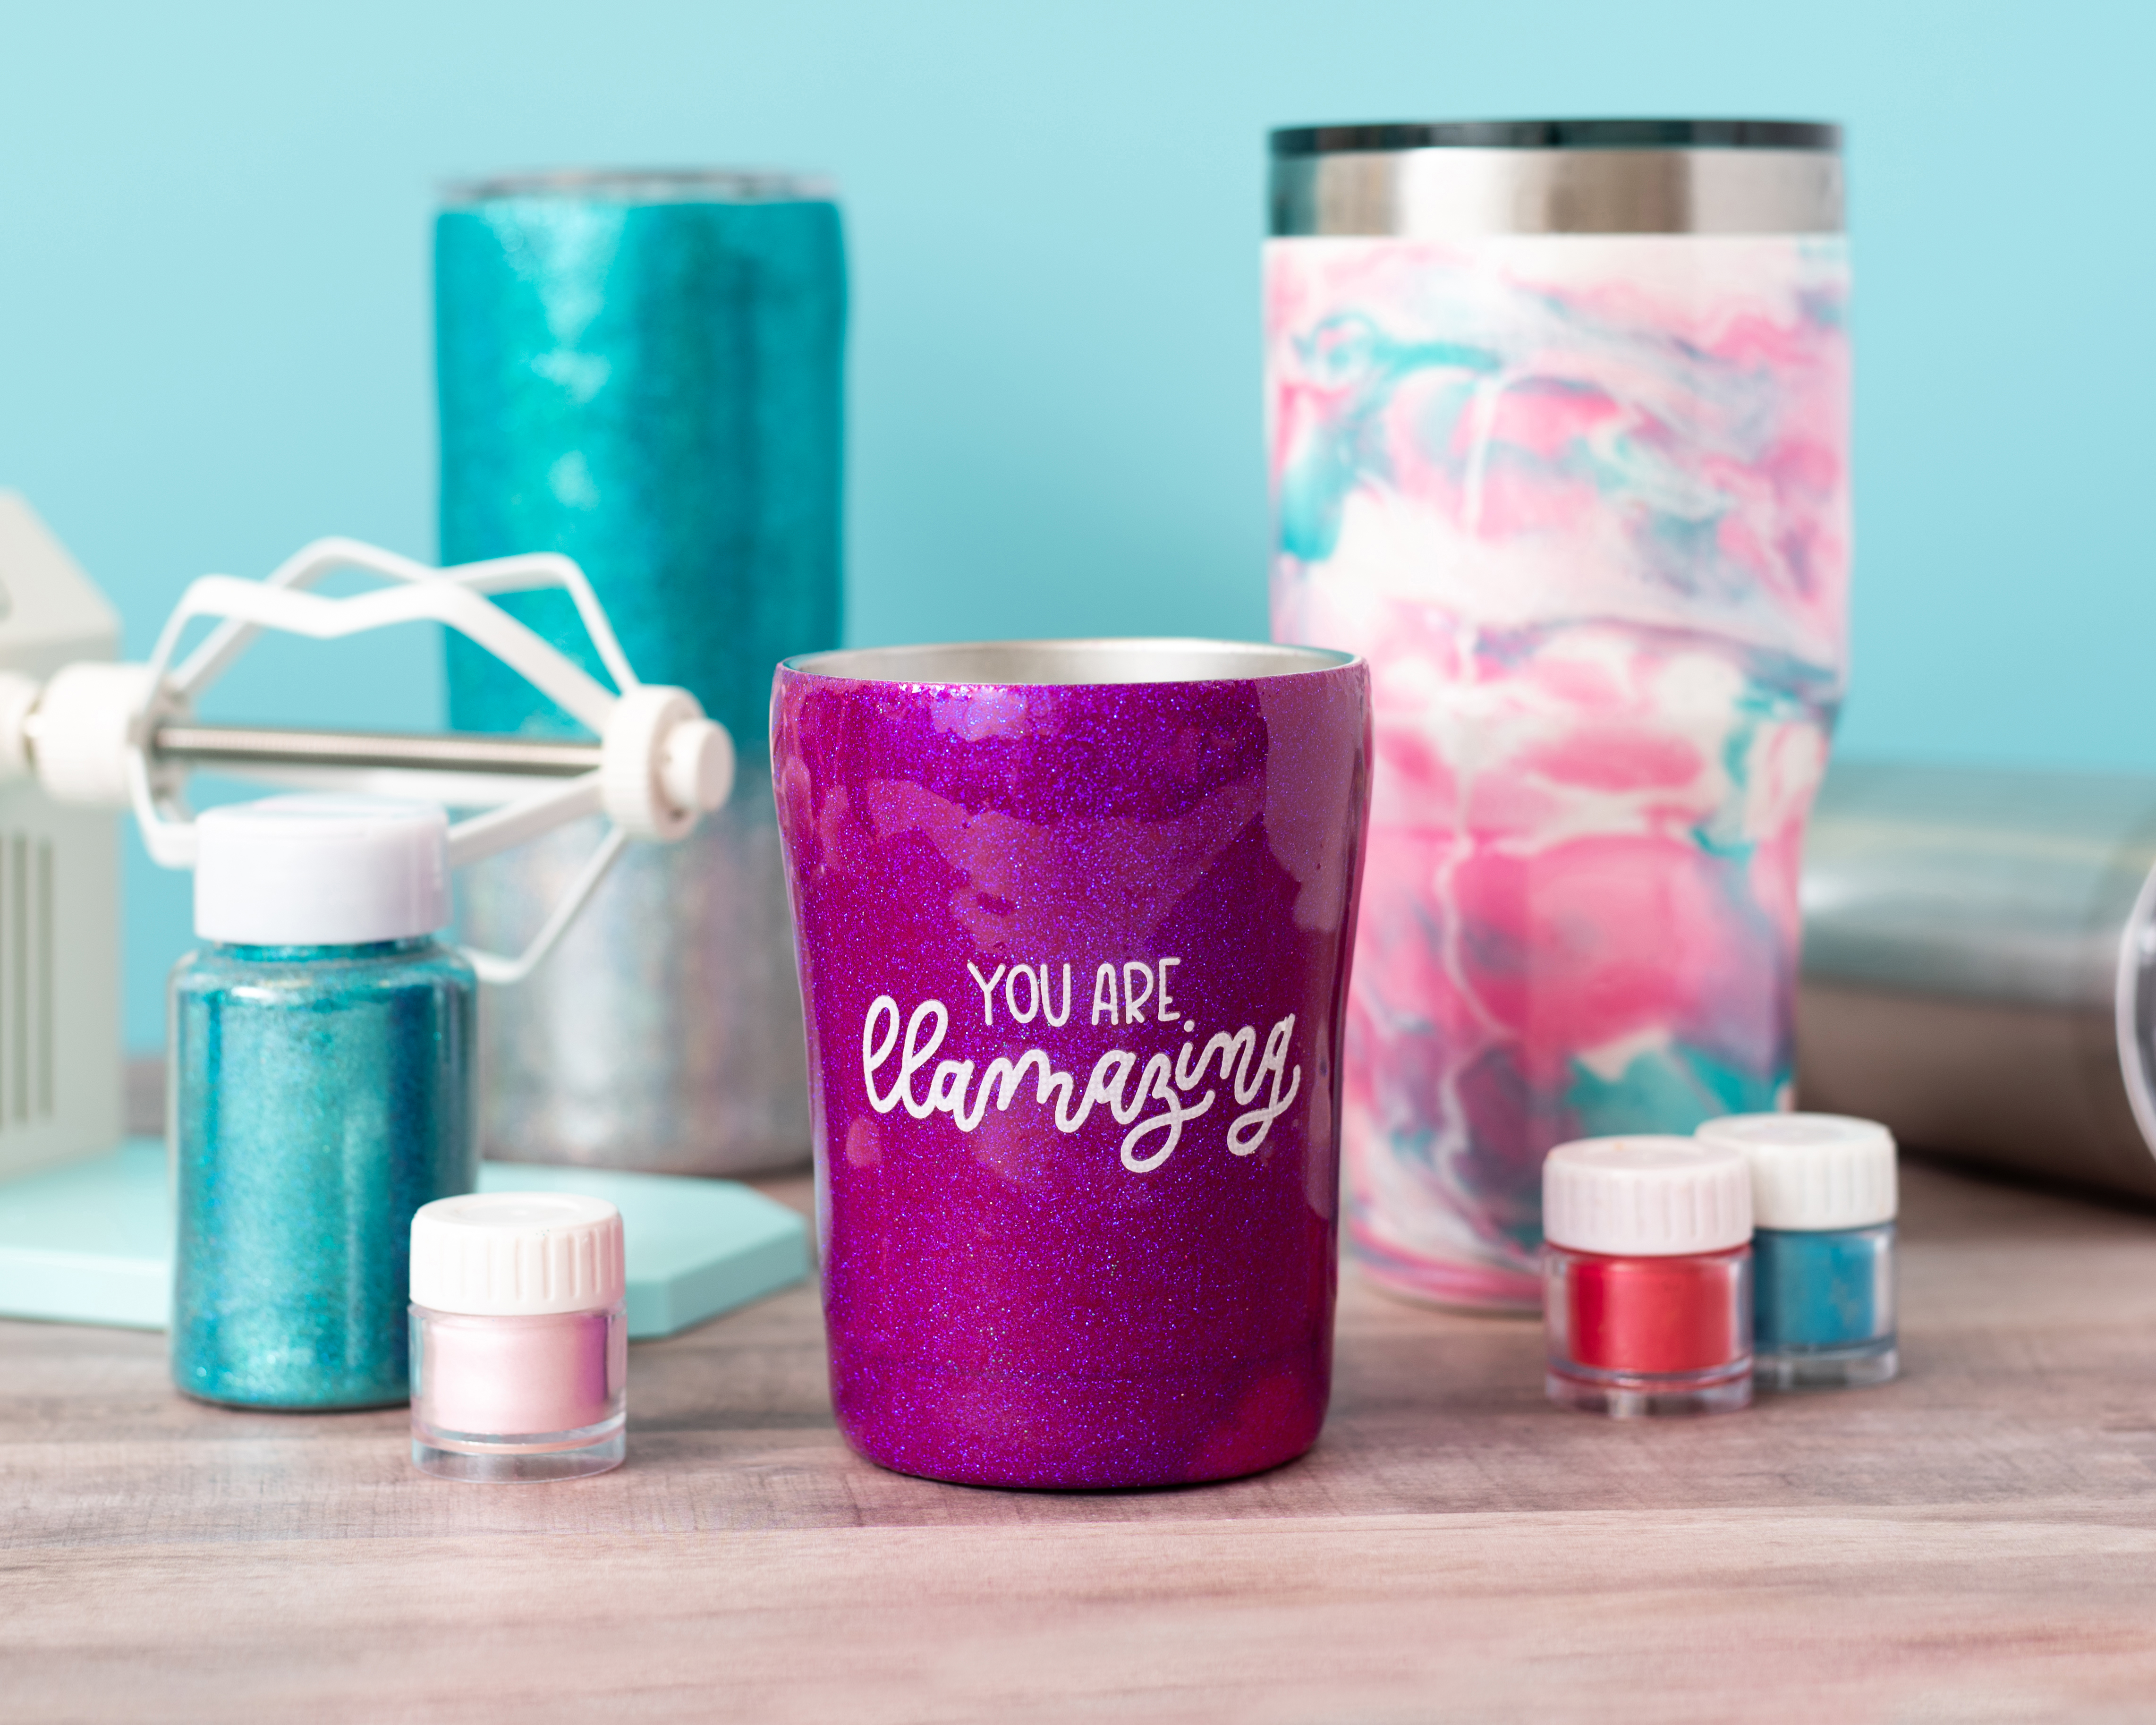 Spin It Tumbler Turner + Accessories by We R Memory Keepers available at Michaels Stores